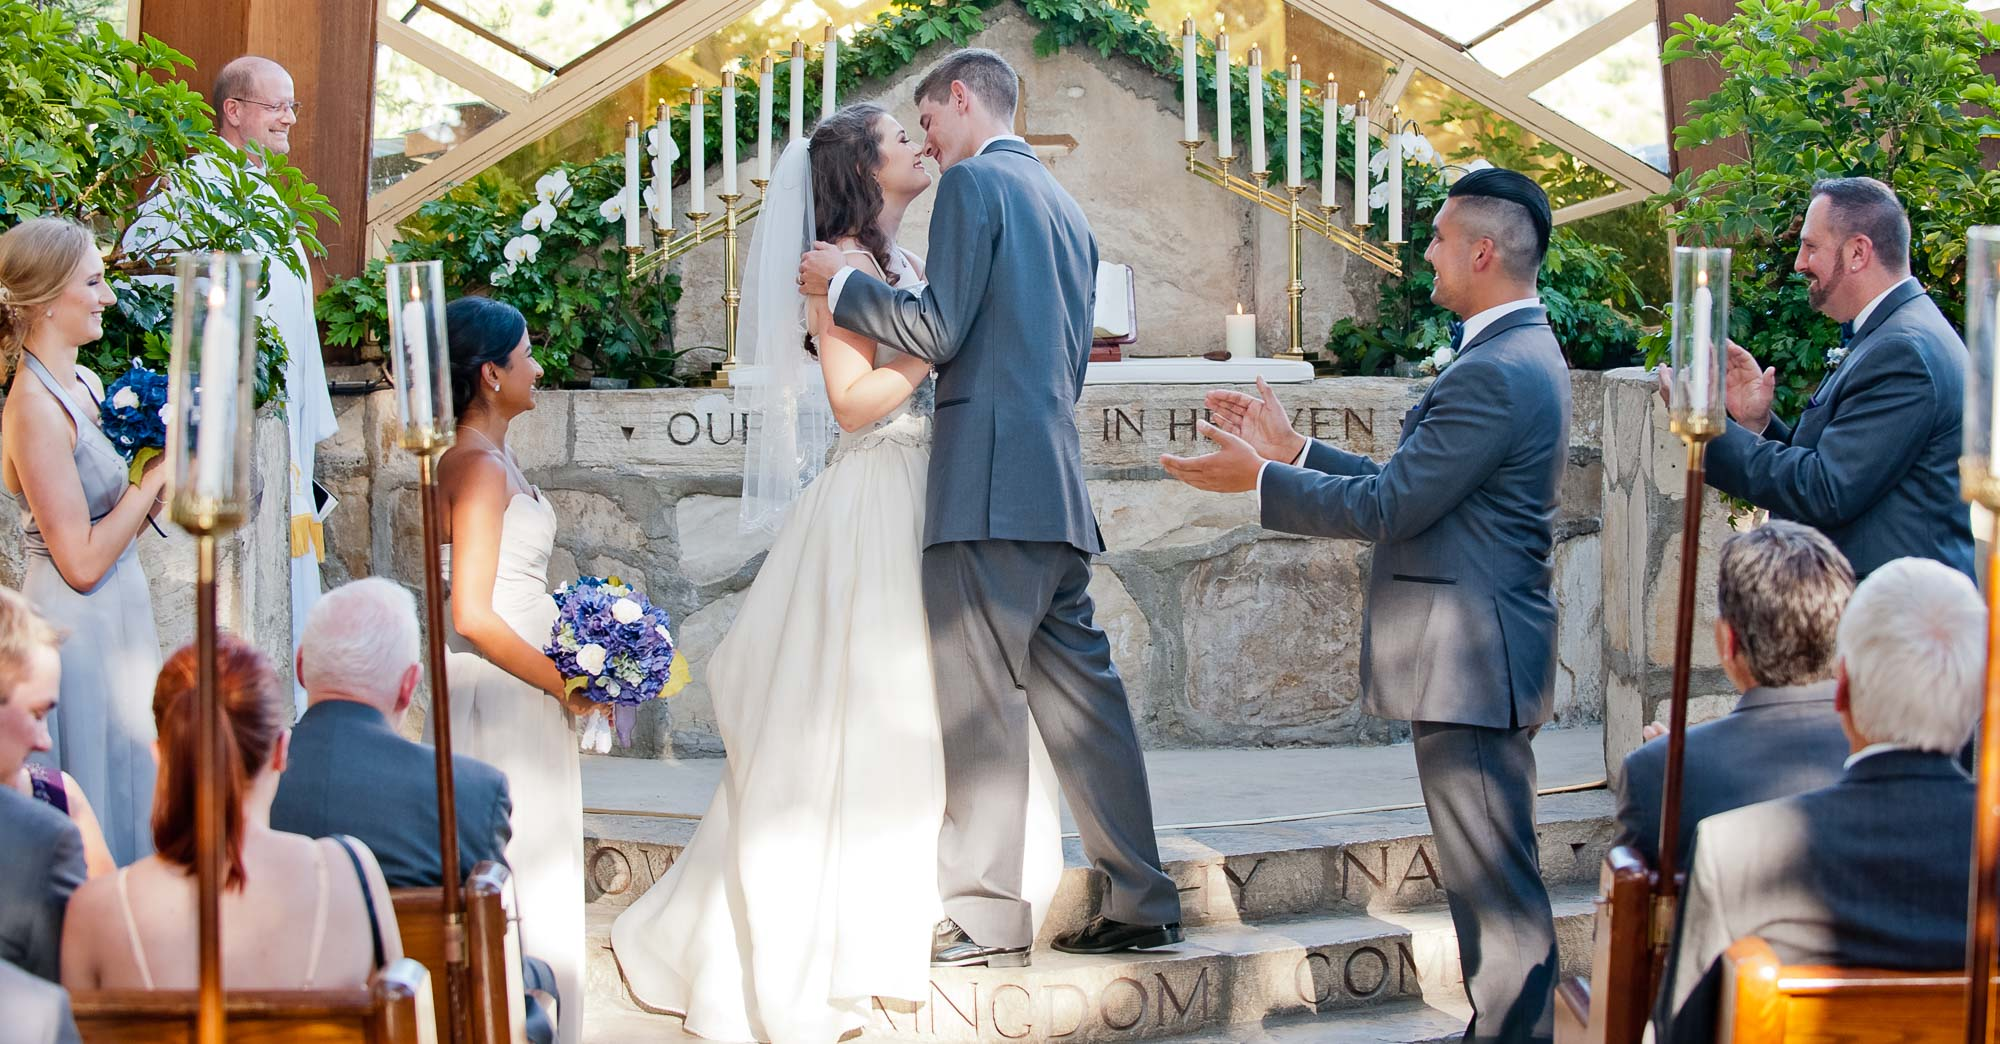 Gwen & Jerryd's Wayfarers Chapel Wedding featured slider image